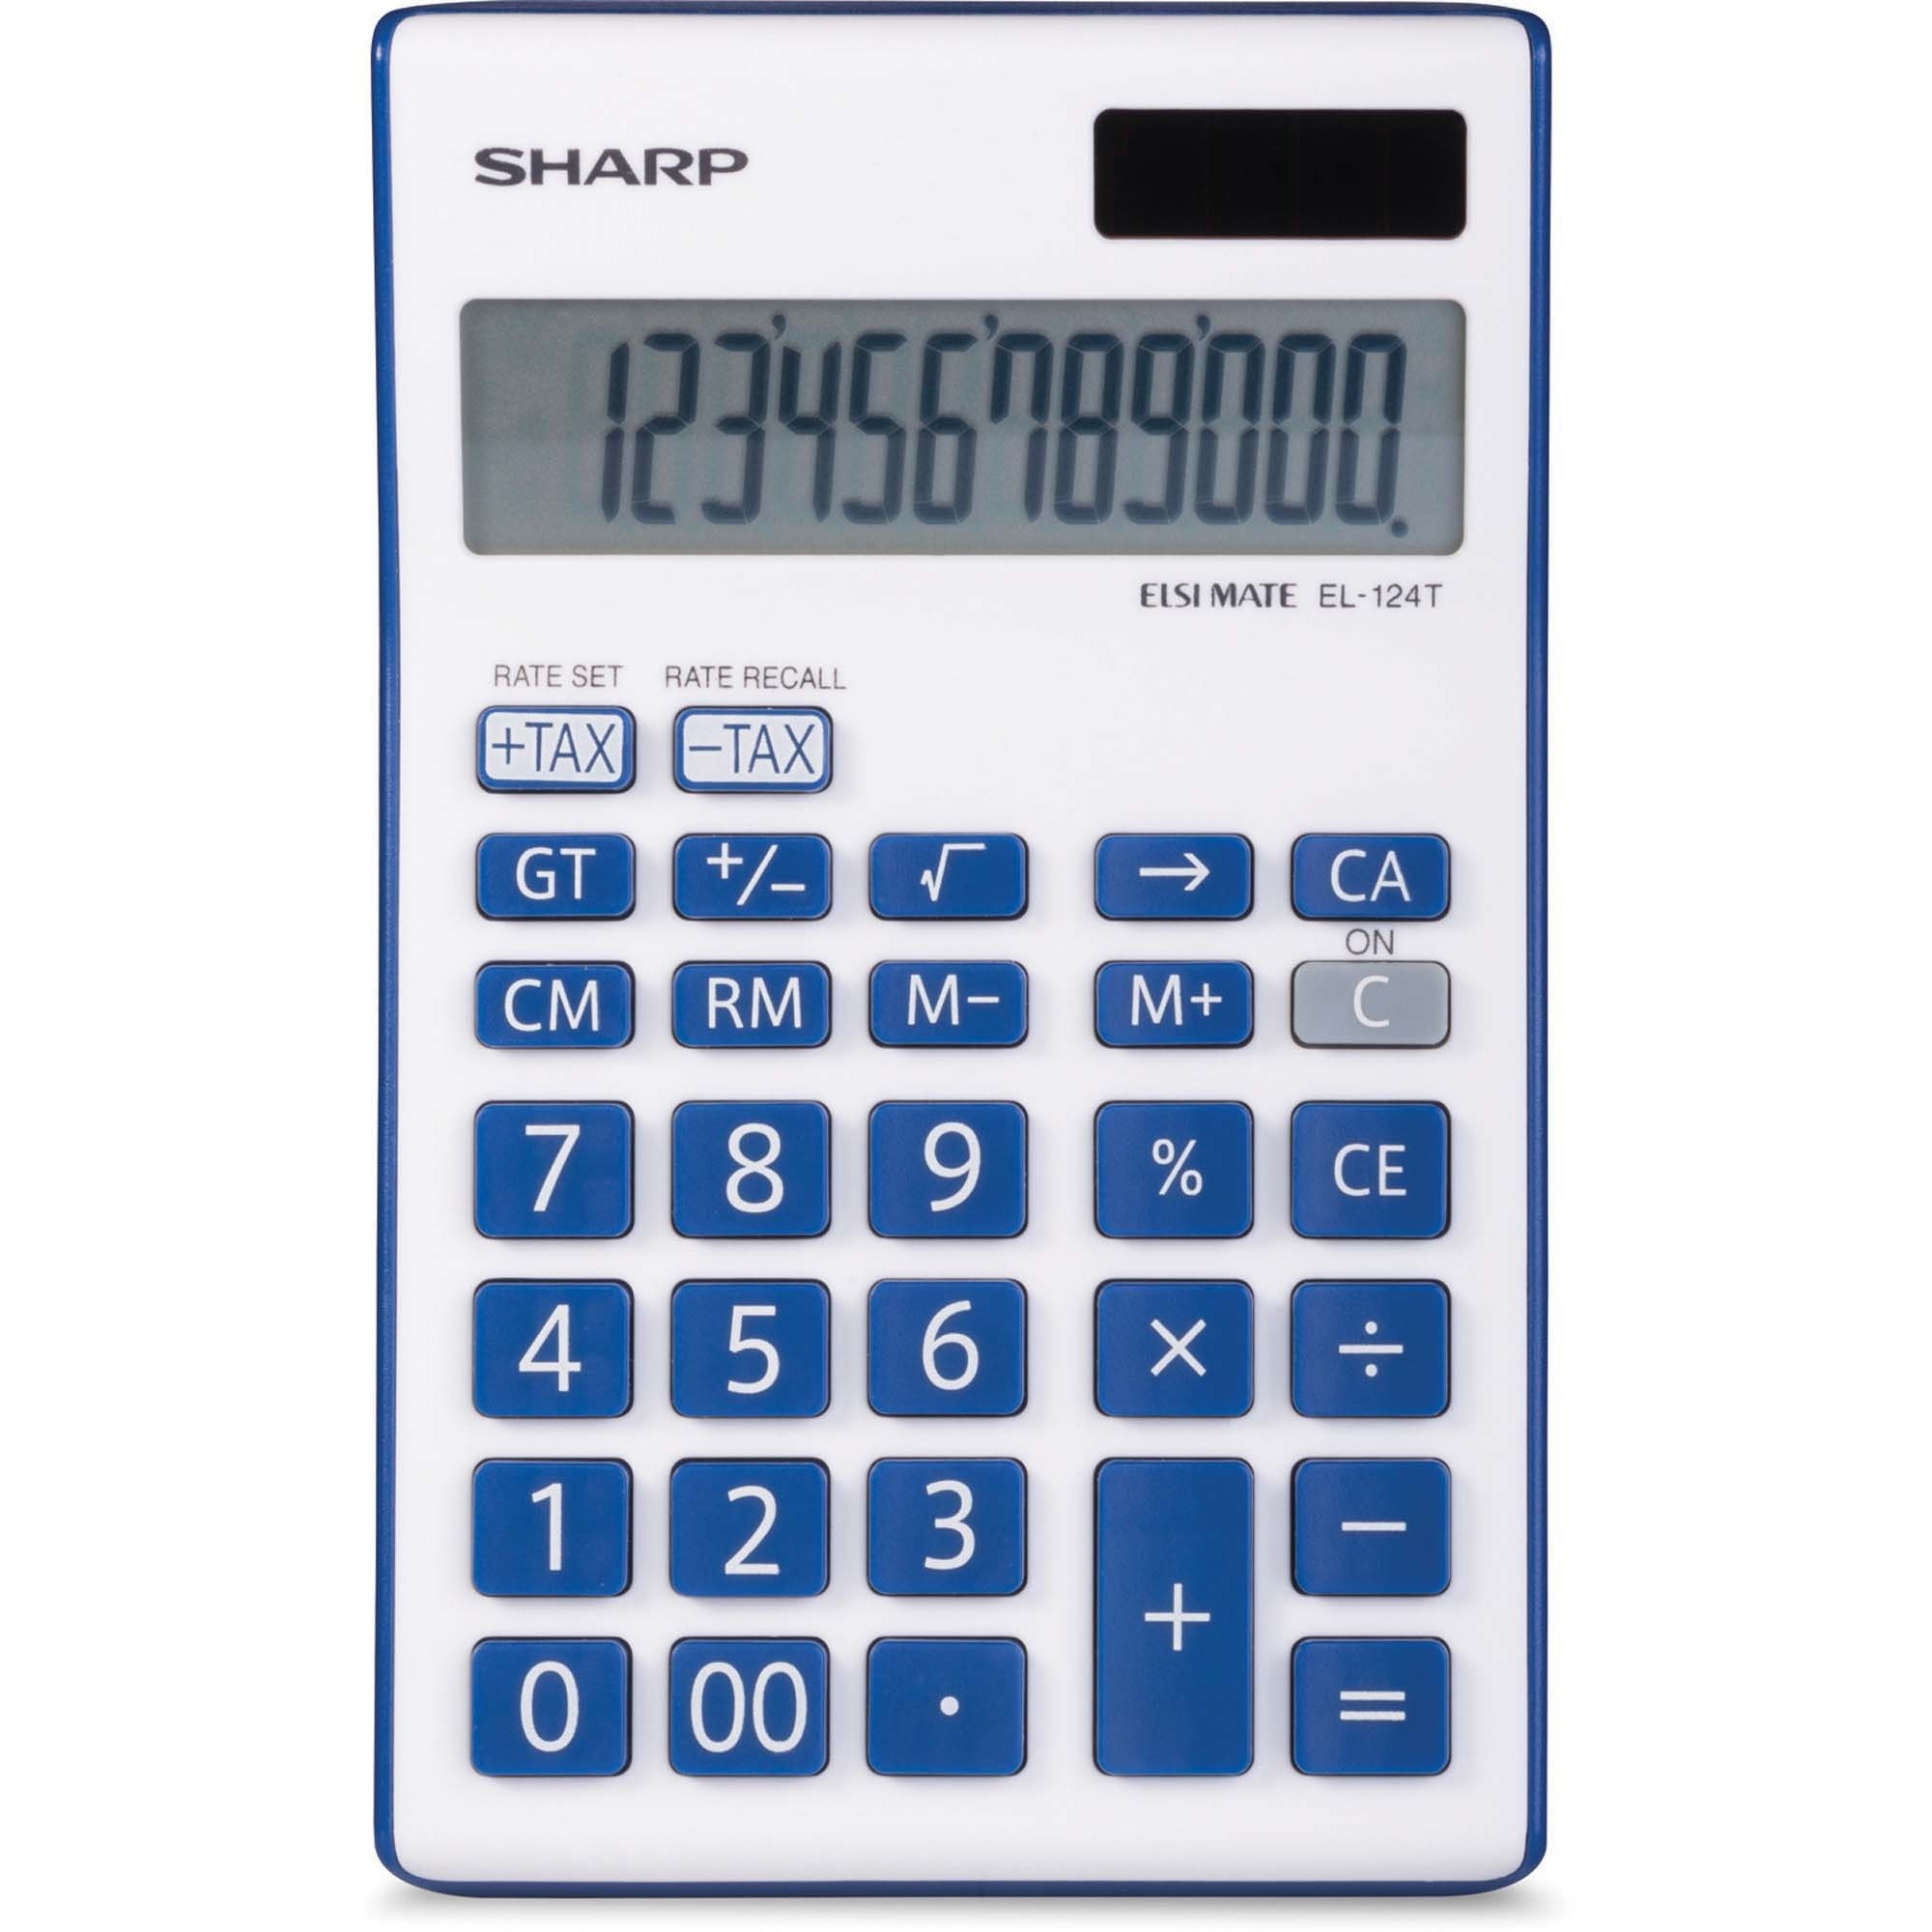 West Coast Office Supplies Technology Machines Calculations For Power Sharp 12 Digit Desktop Calculator Dual Auto Off Built In Memory Digits Battery Solar Powered 1 X 38 61 Blue Each